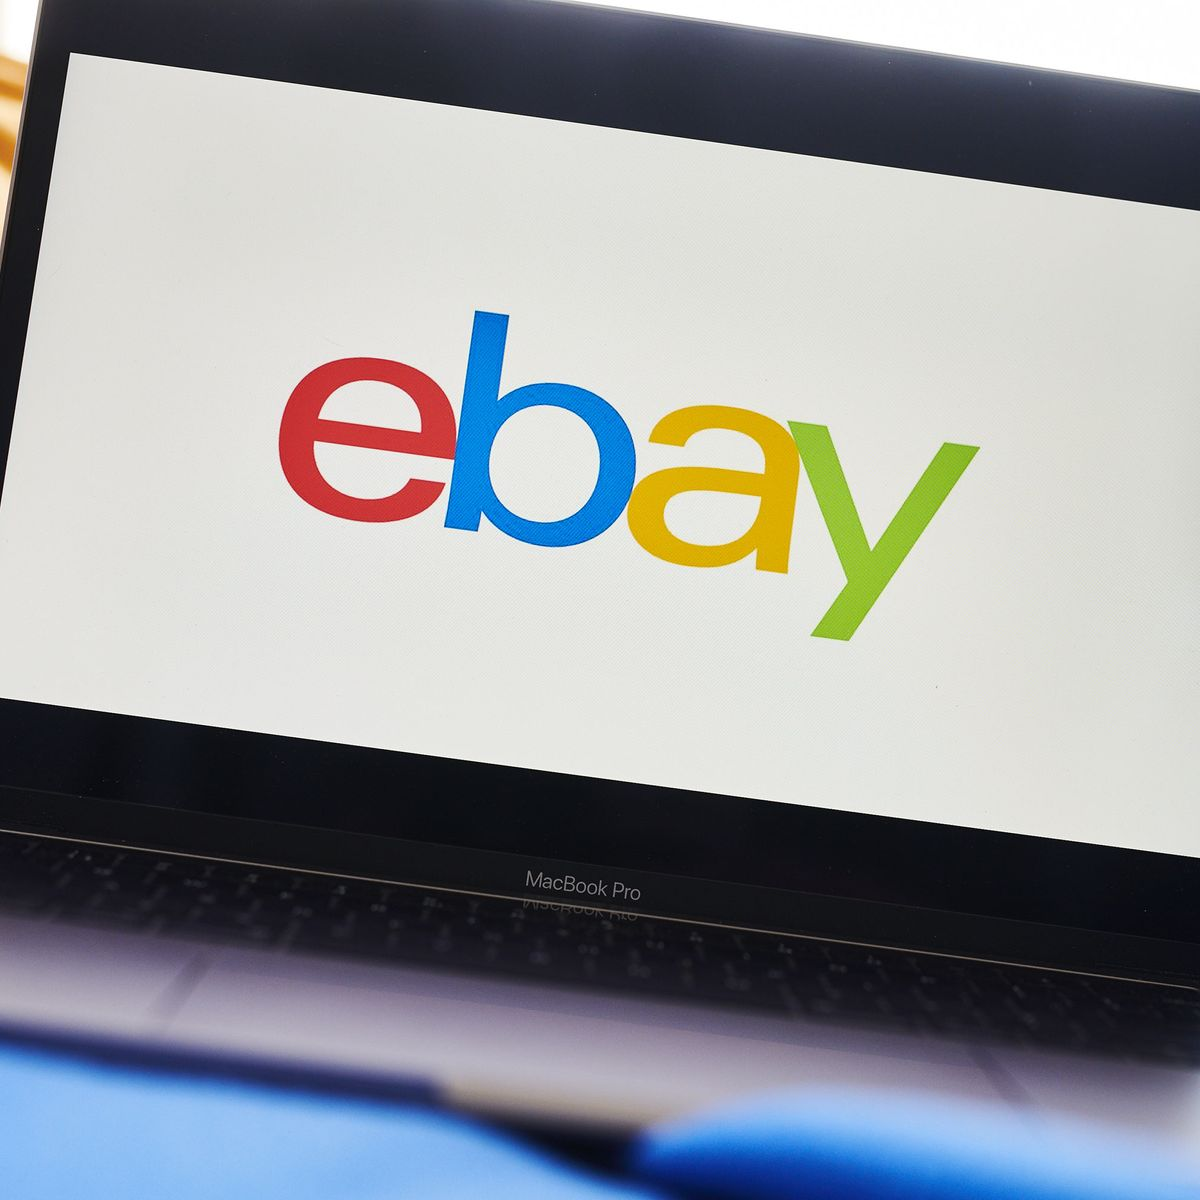 Ex Ebay Employees Charged With Cyberstalking